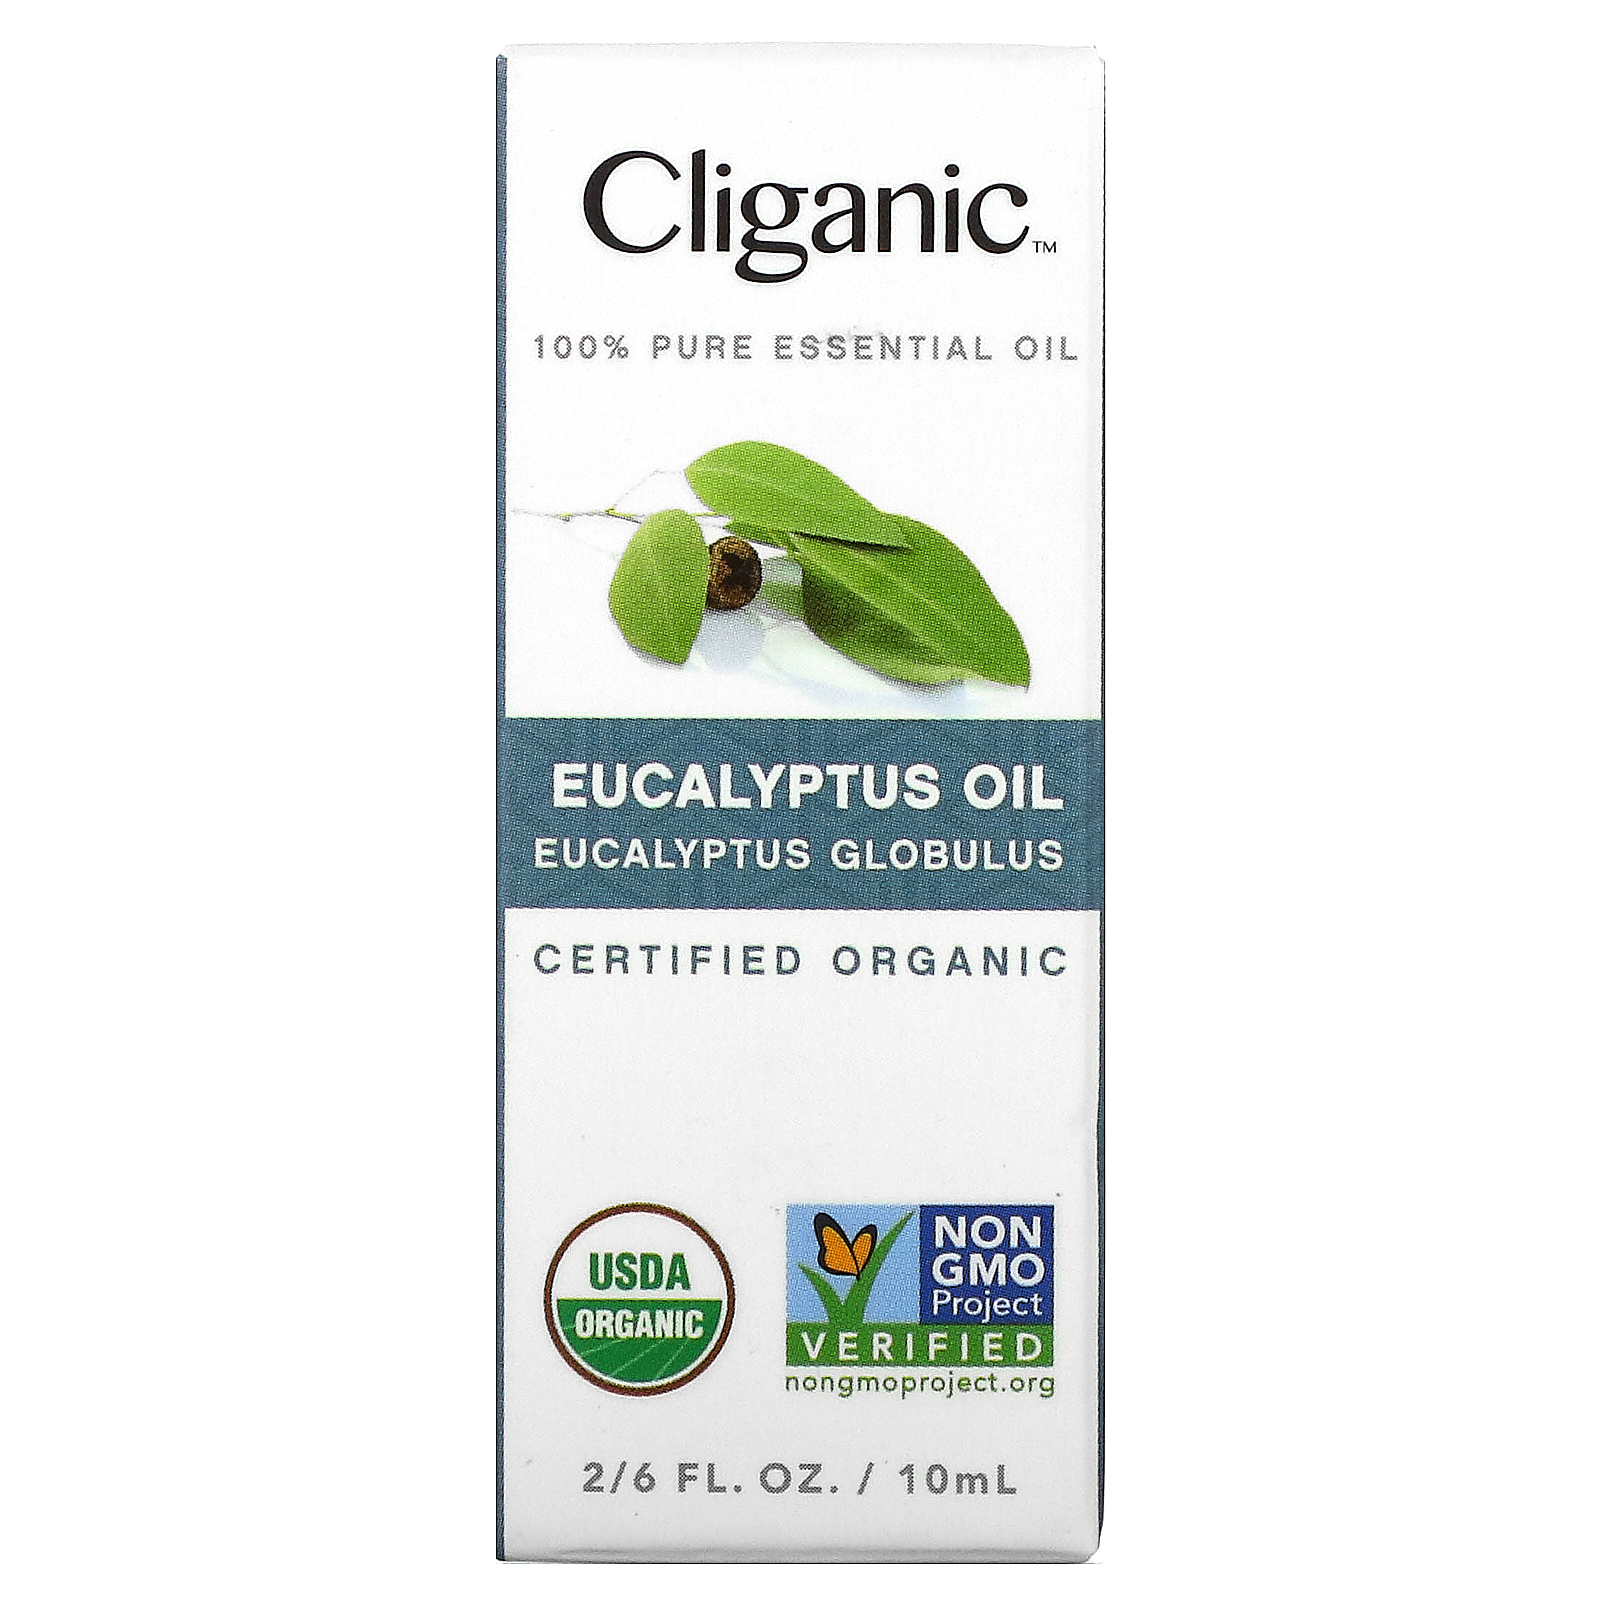 Cliganic, 100% Pure Essential Oil, Eucalyptus, 2/6 fl oz (10 ml)